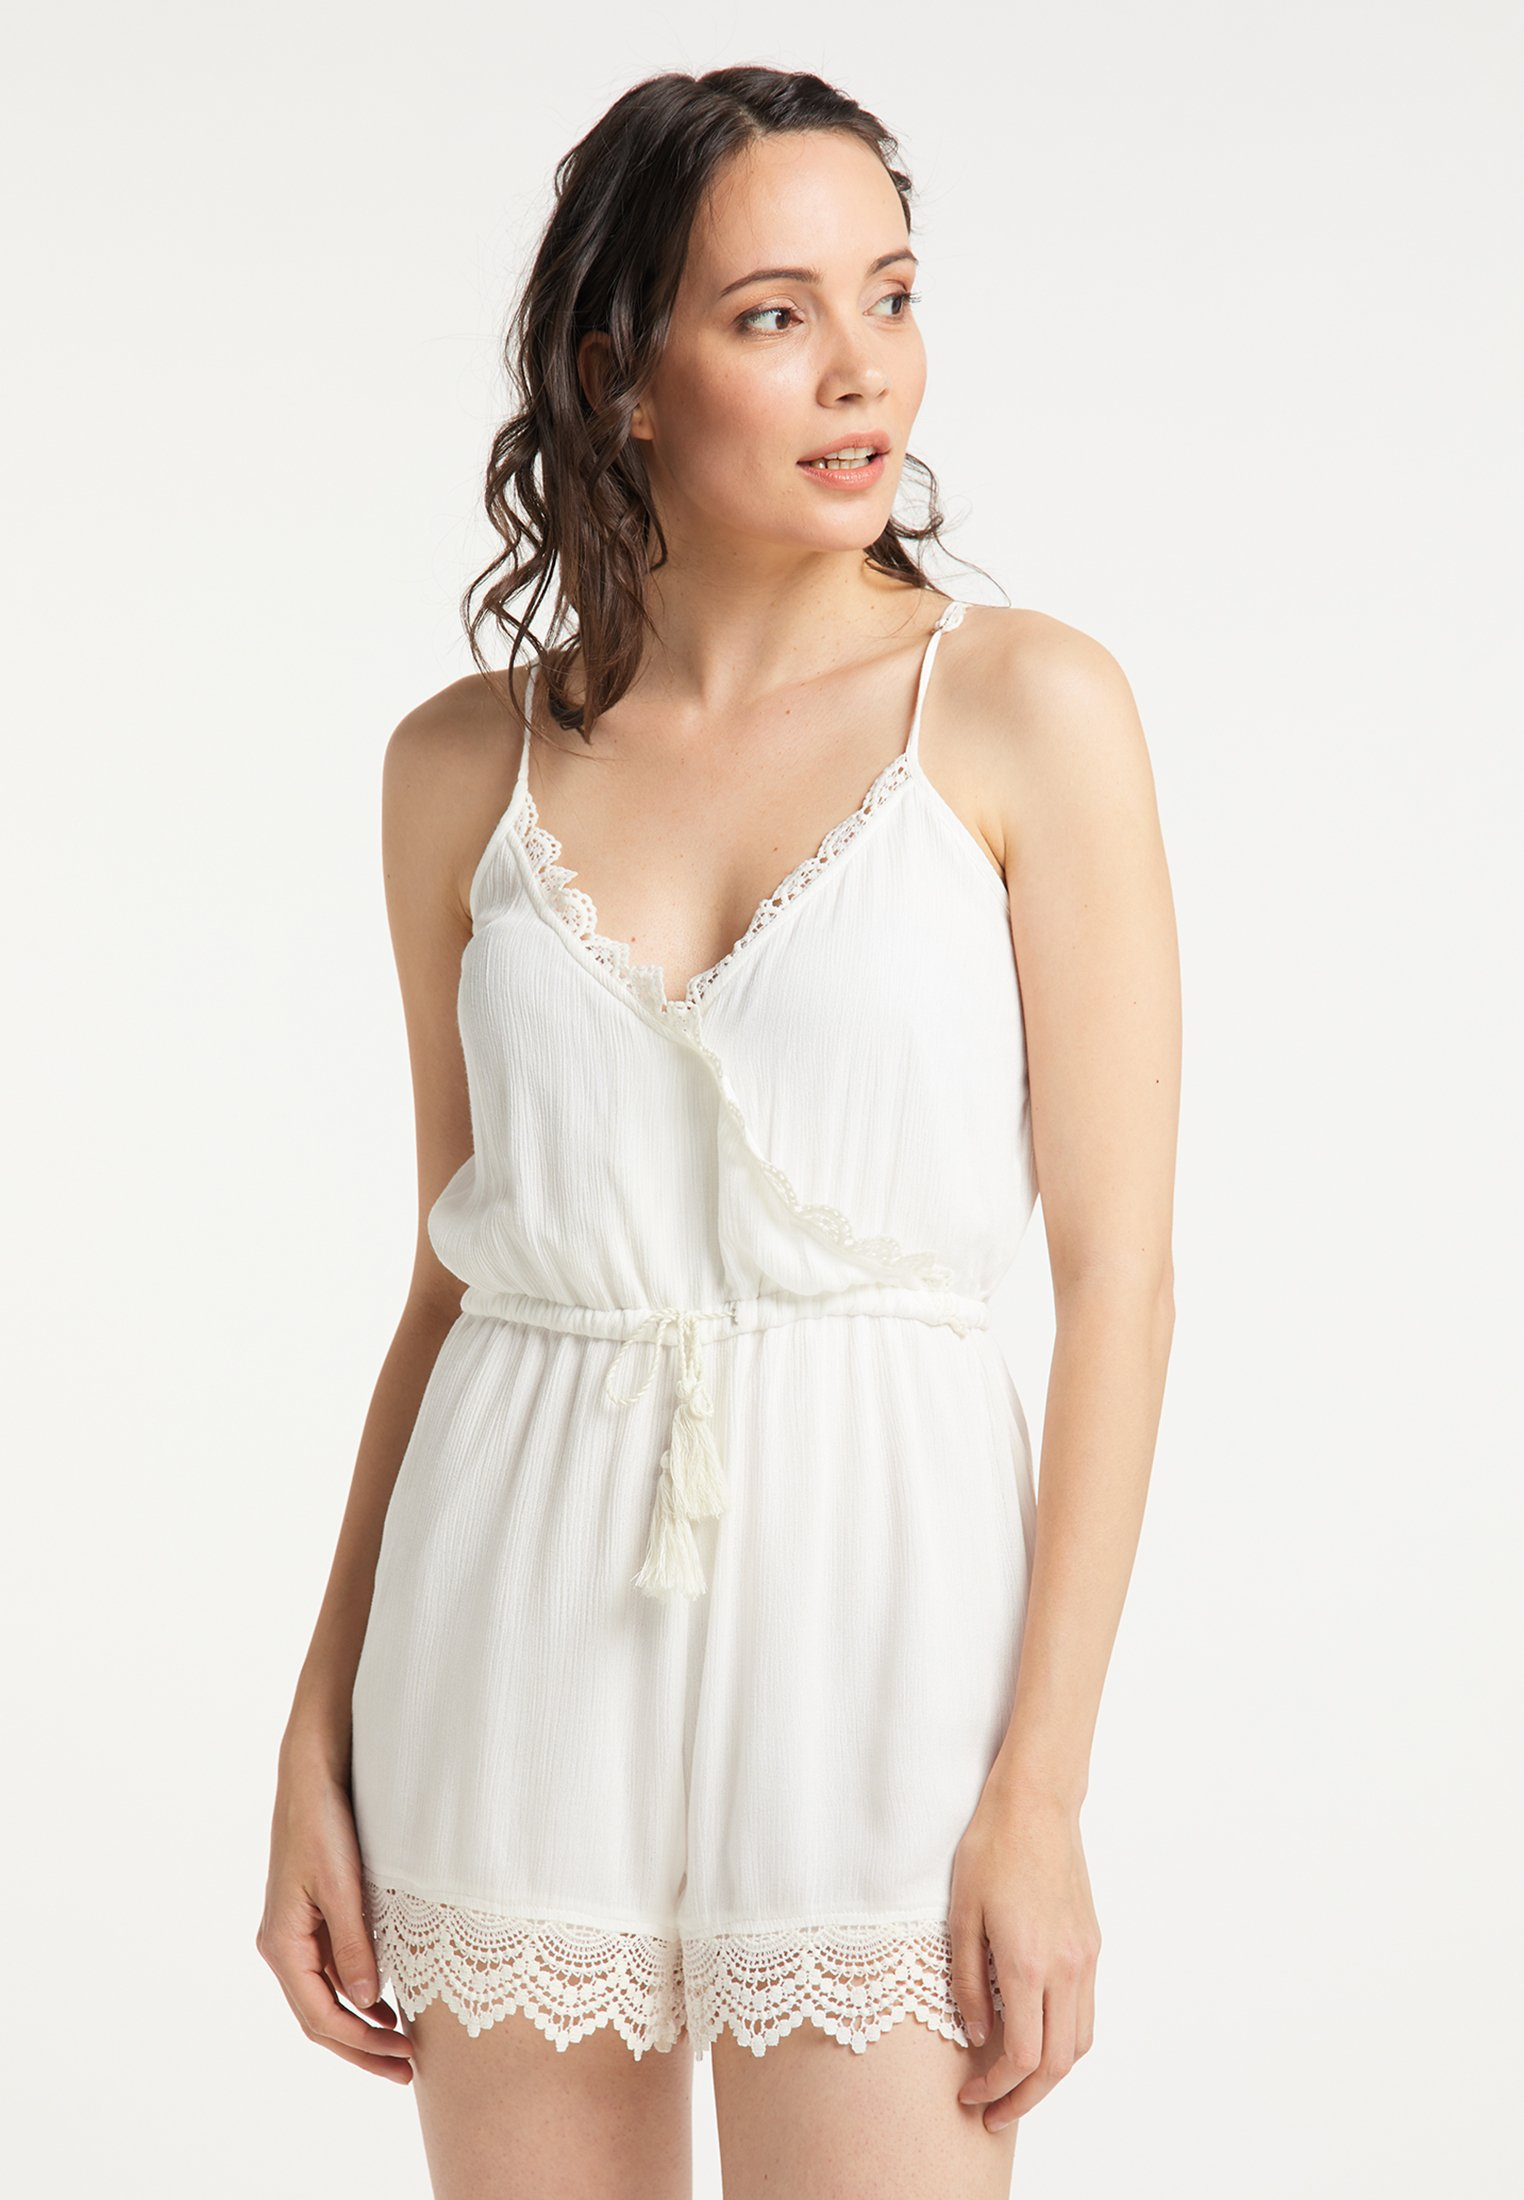 Online Women's Clothing usha Jumpsuit wollweiss jT3792ghk